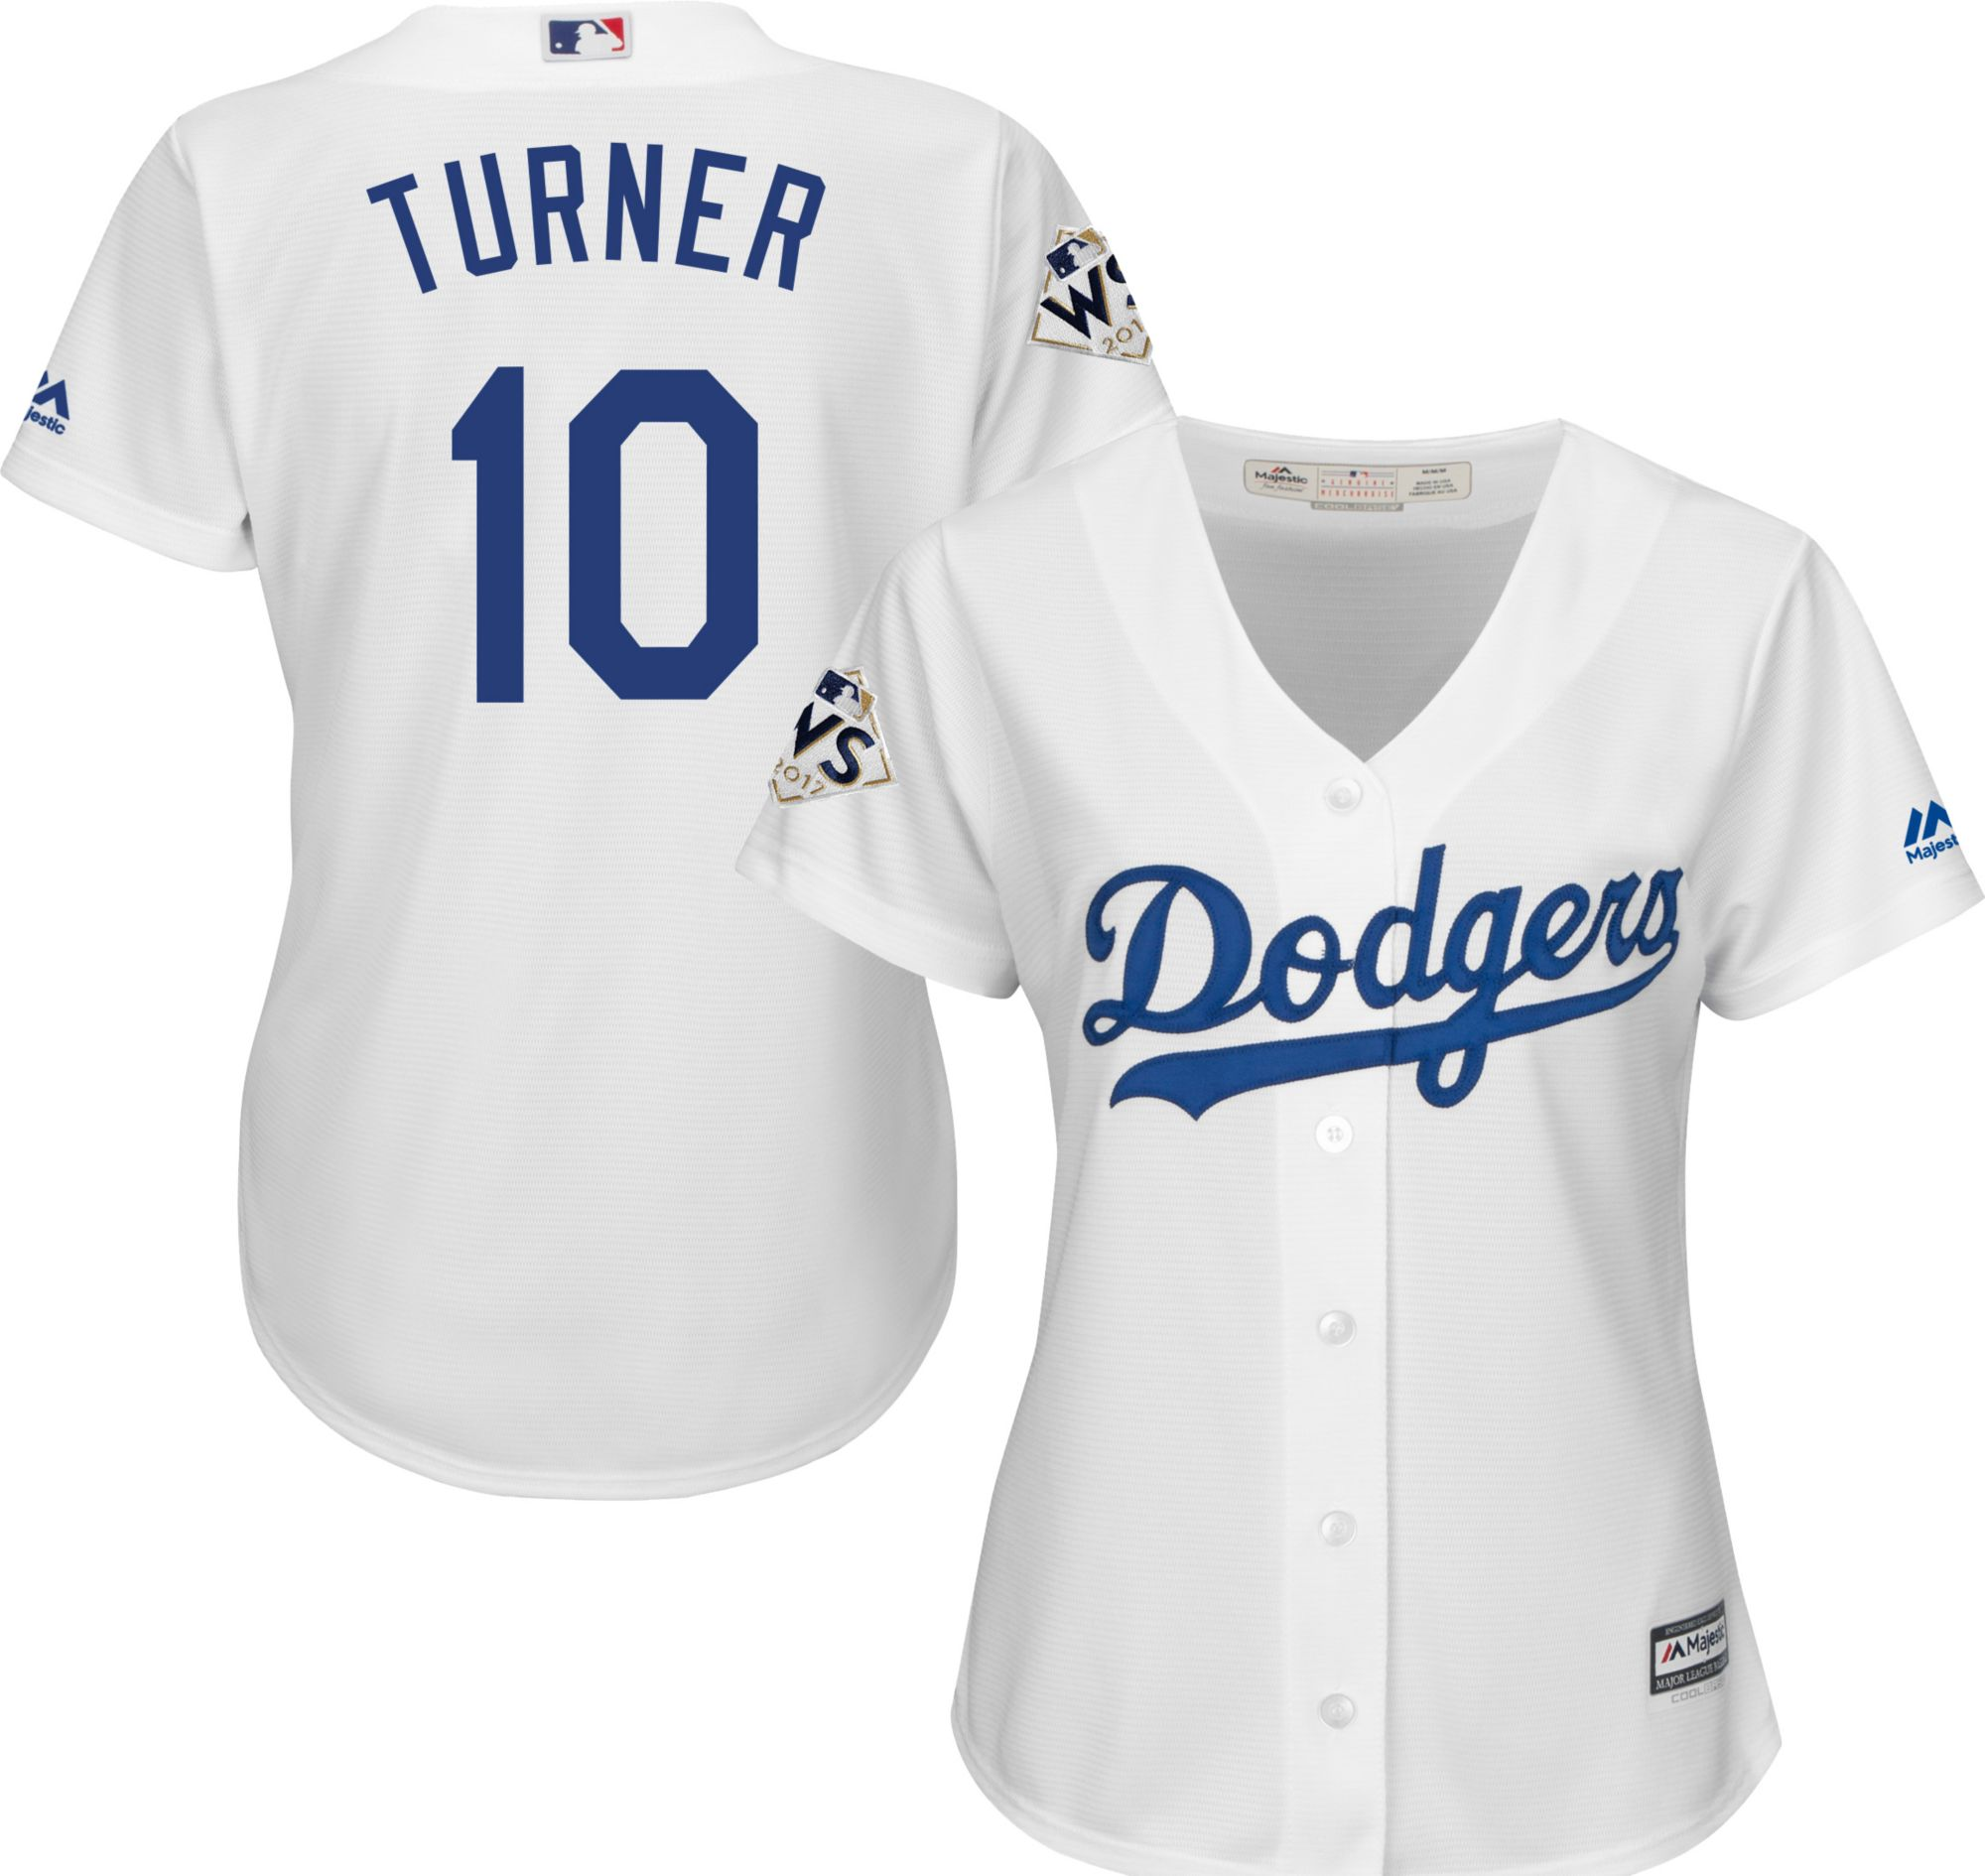 premium selection 39454 474ab 10 justin turner jersey city nj